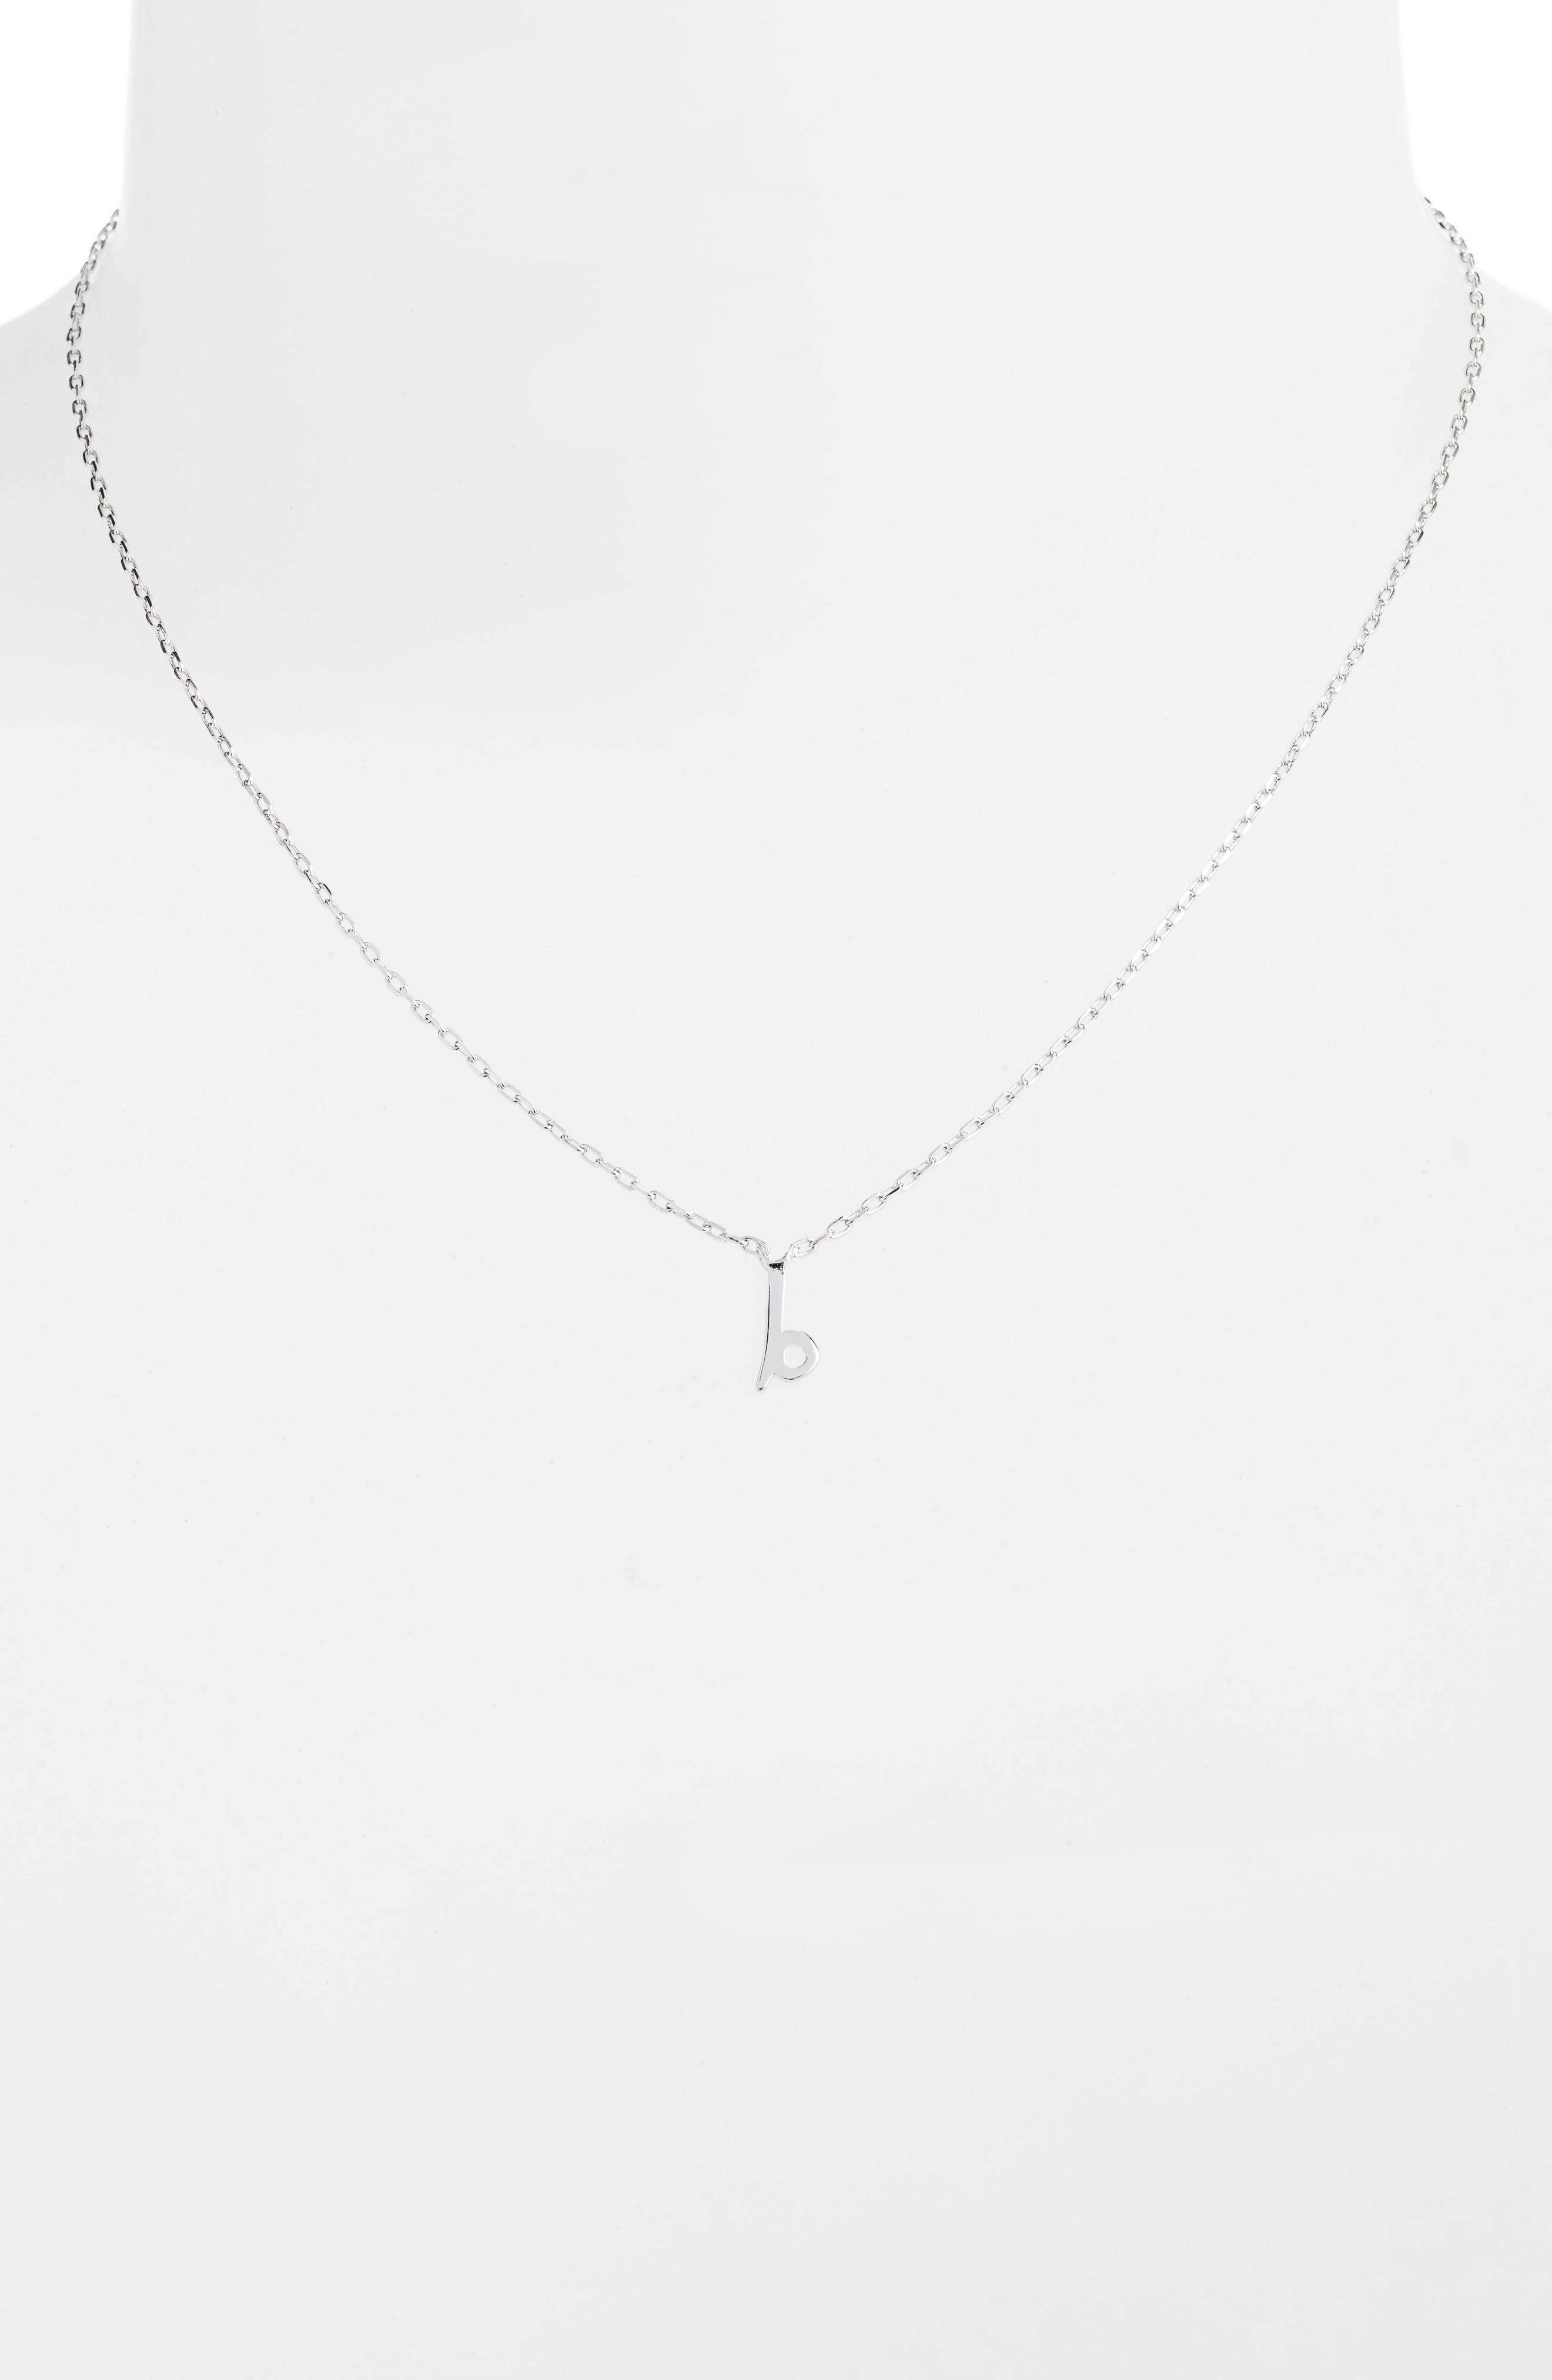 kate spade one in a million initial pendant necklace,                             Alternate thumbnail 2, color,                             B-SILVER